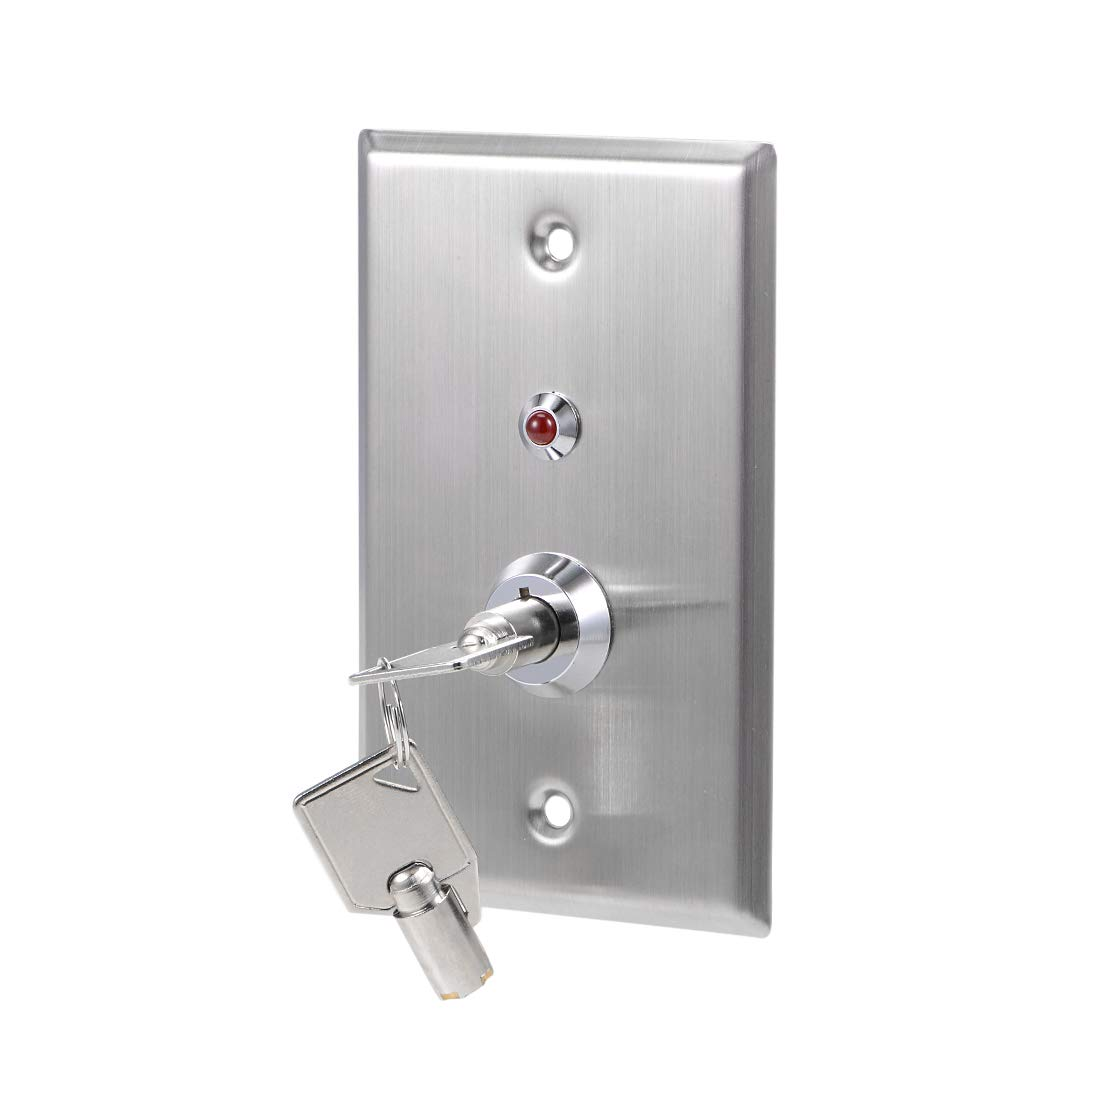 uxcell Key Switch On-Off Exit Switches Emergency Door Release SPST for Access Control w DC 12V Red LED Indicator